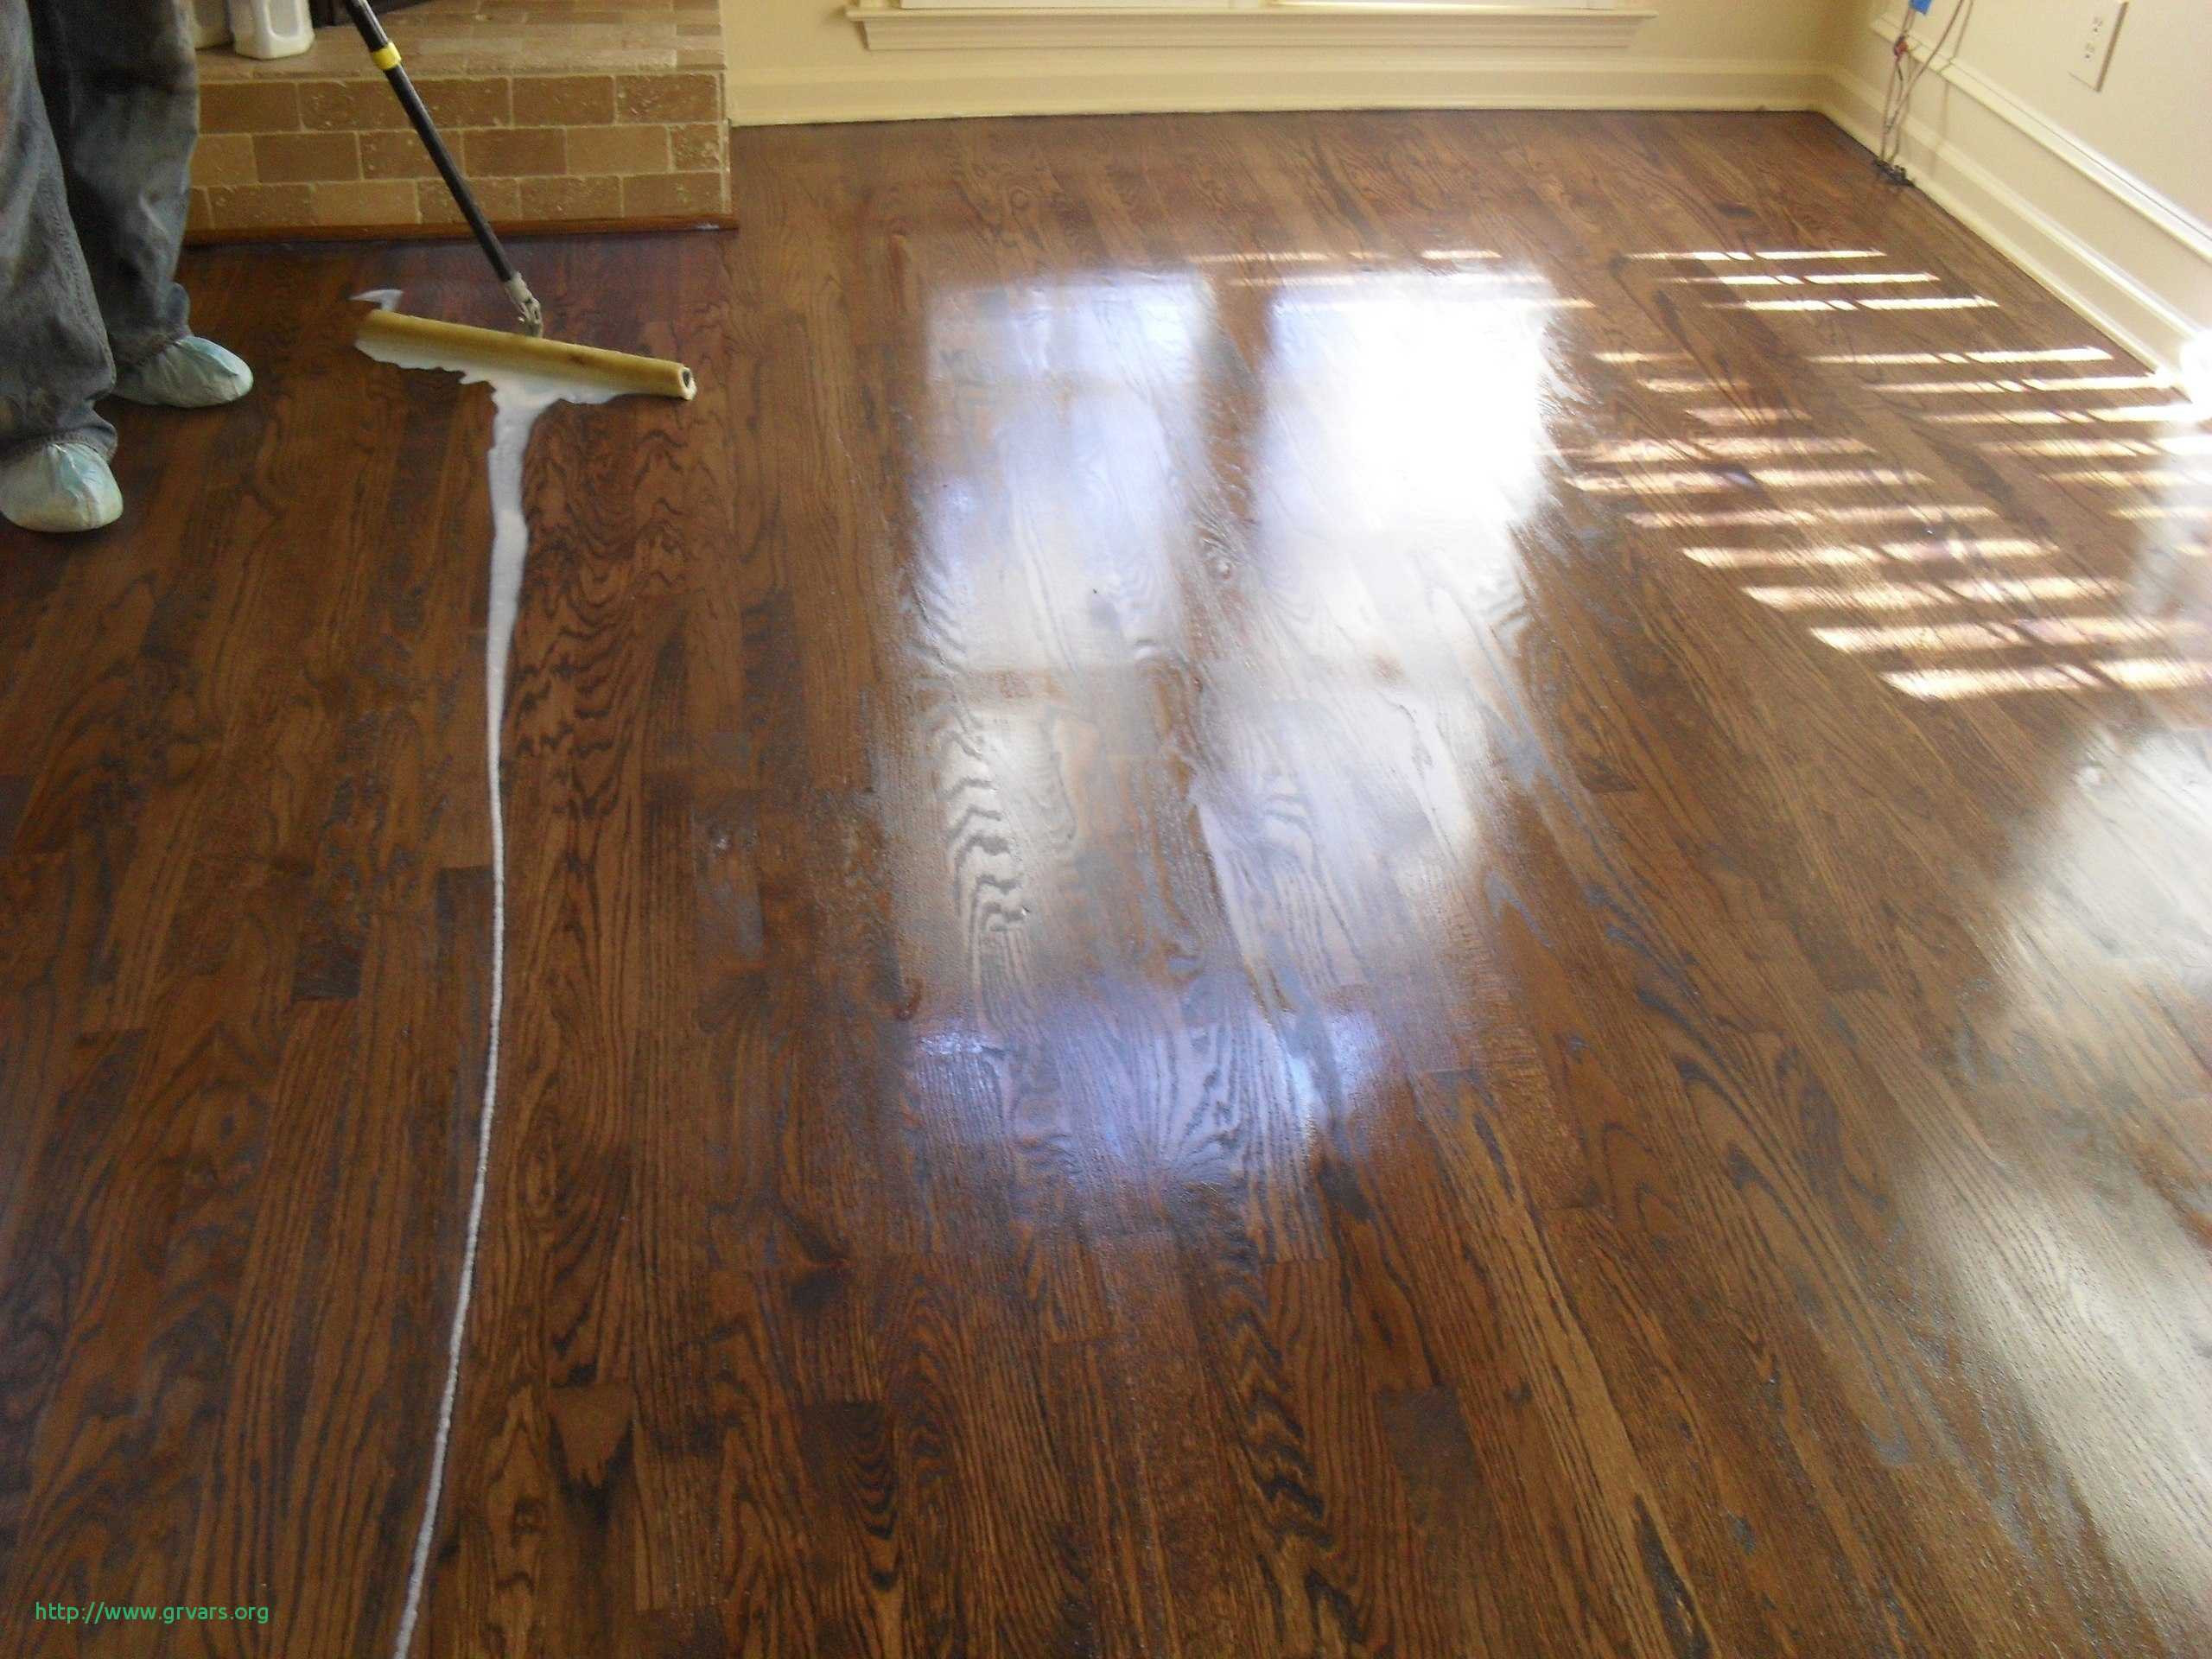 discount hardwood flooring calgary of image number 6563 from post restoring old hardwood floors will for nouveau hardwood floors yourself ideas restoring old will inspirant redo without sanding podemosleganes lovely refinishingod pet